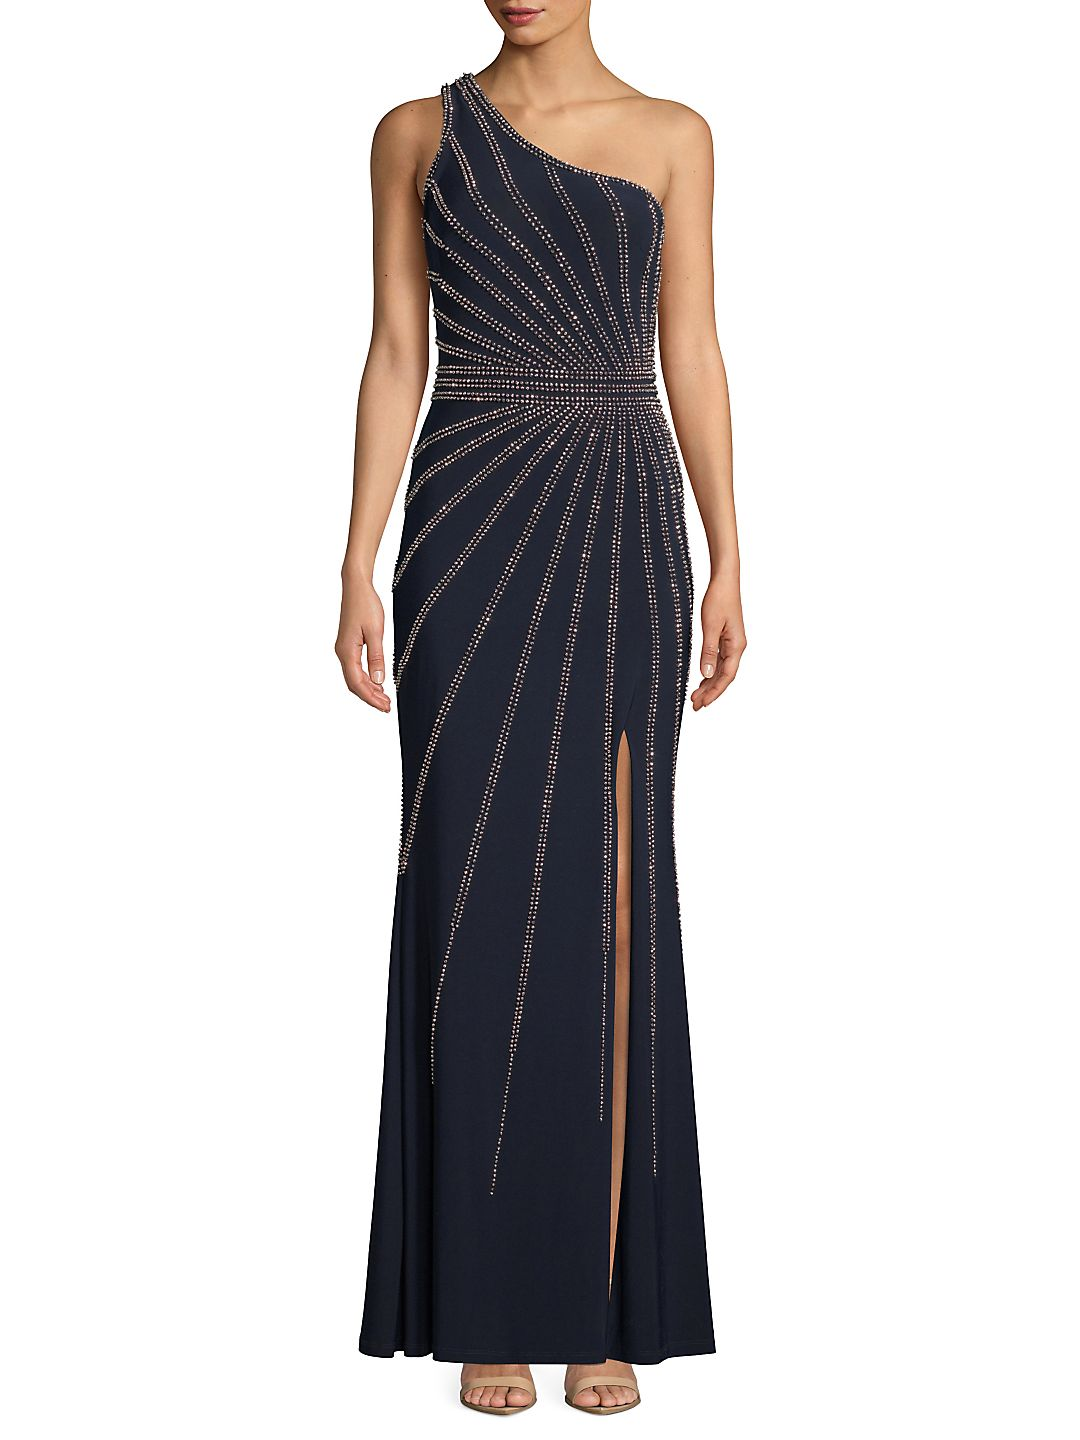 One Shoulder Beaded Evening Gown